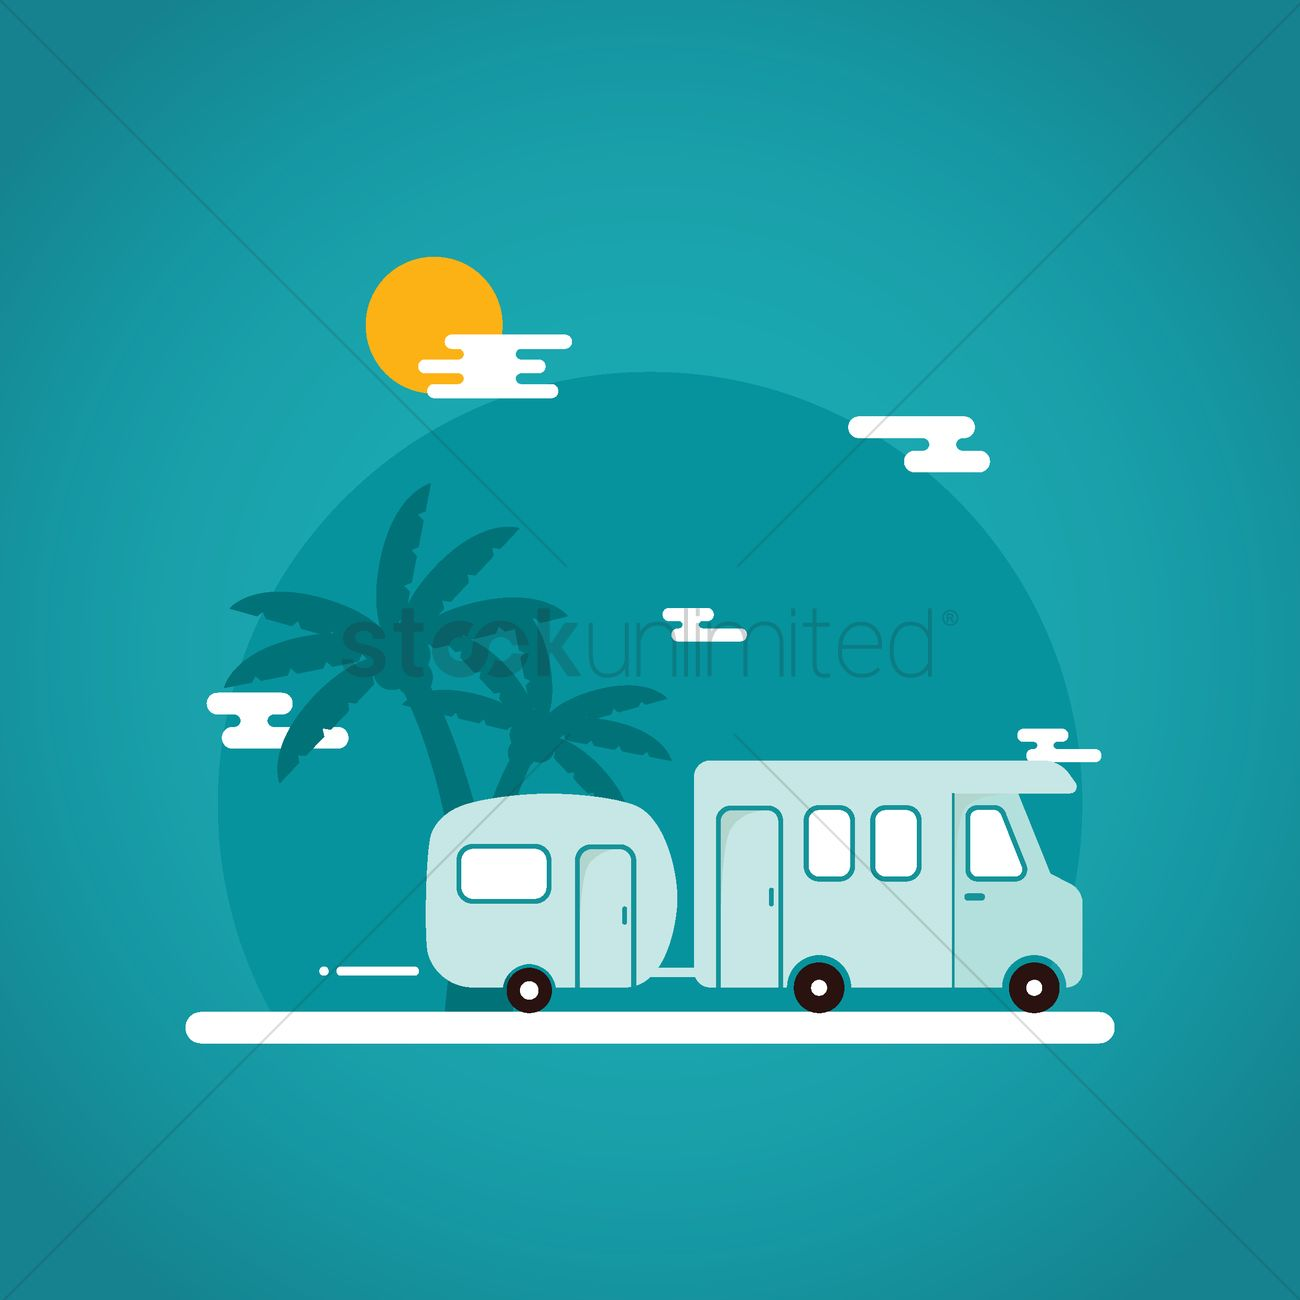 Travel Wallpaper Vector Image 1712795 Stockunlimited